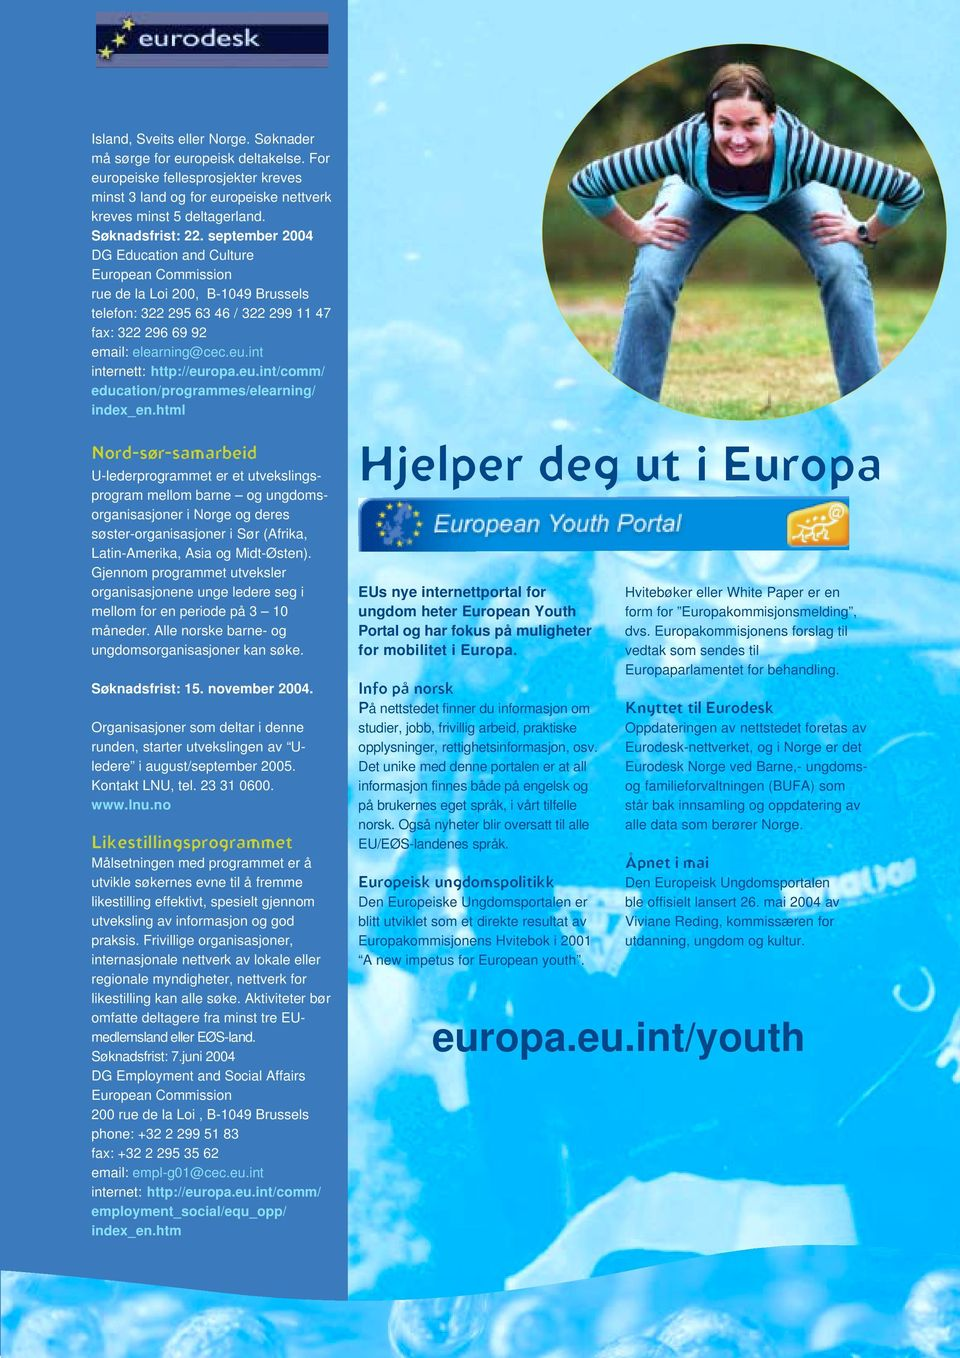 int internett: http://europa.eu.int/comm/ education/programmes/elearning/ index_en.